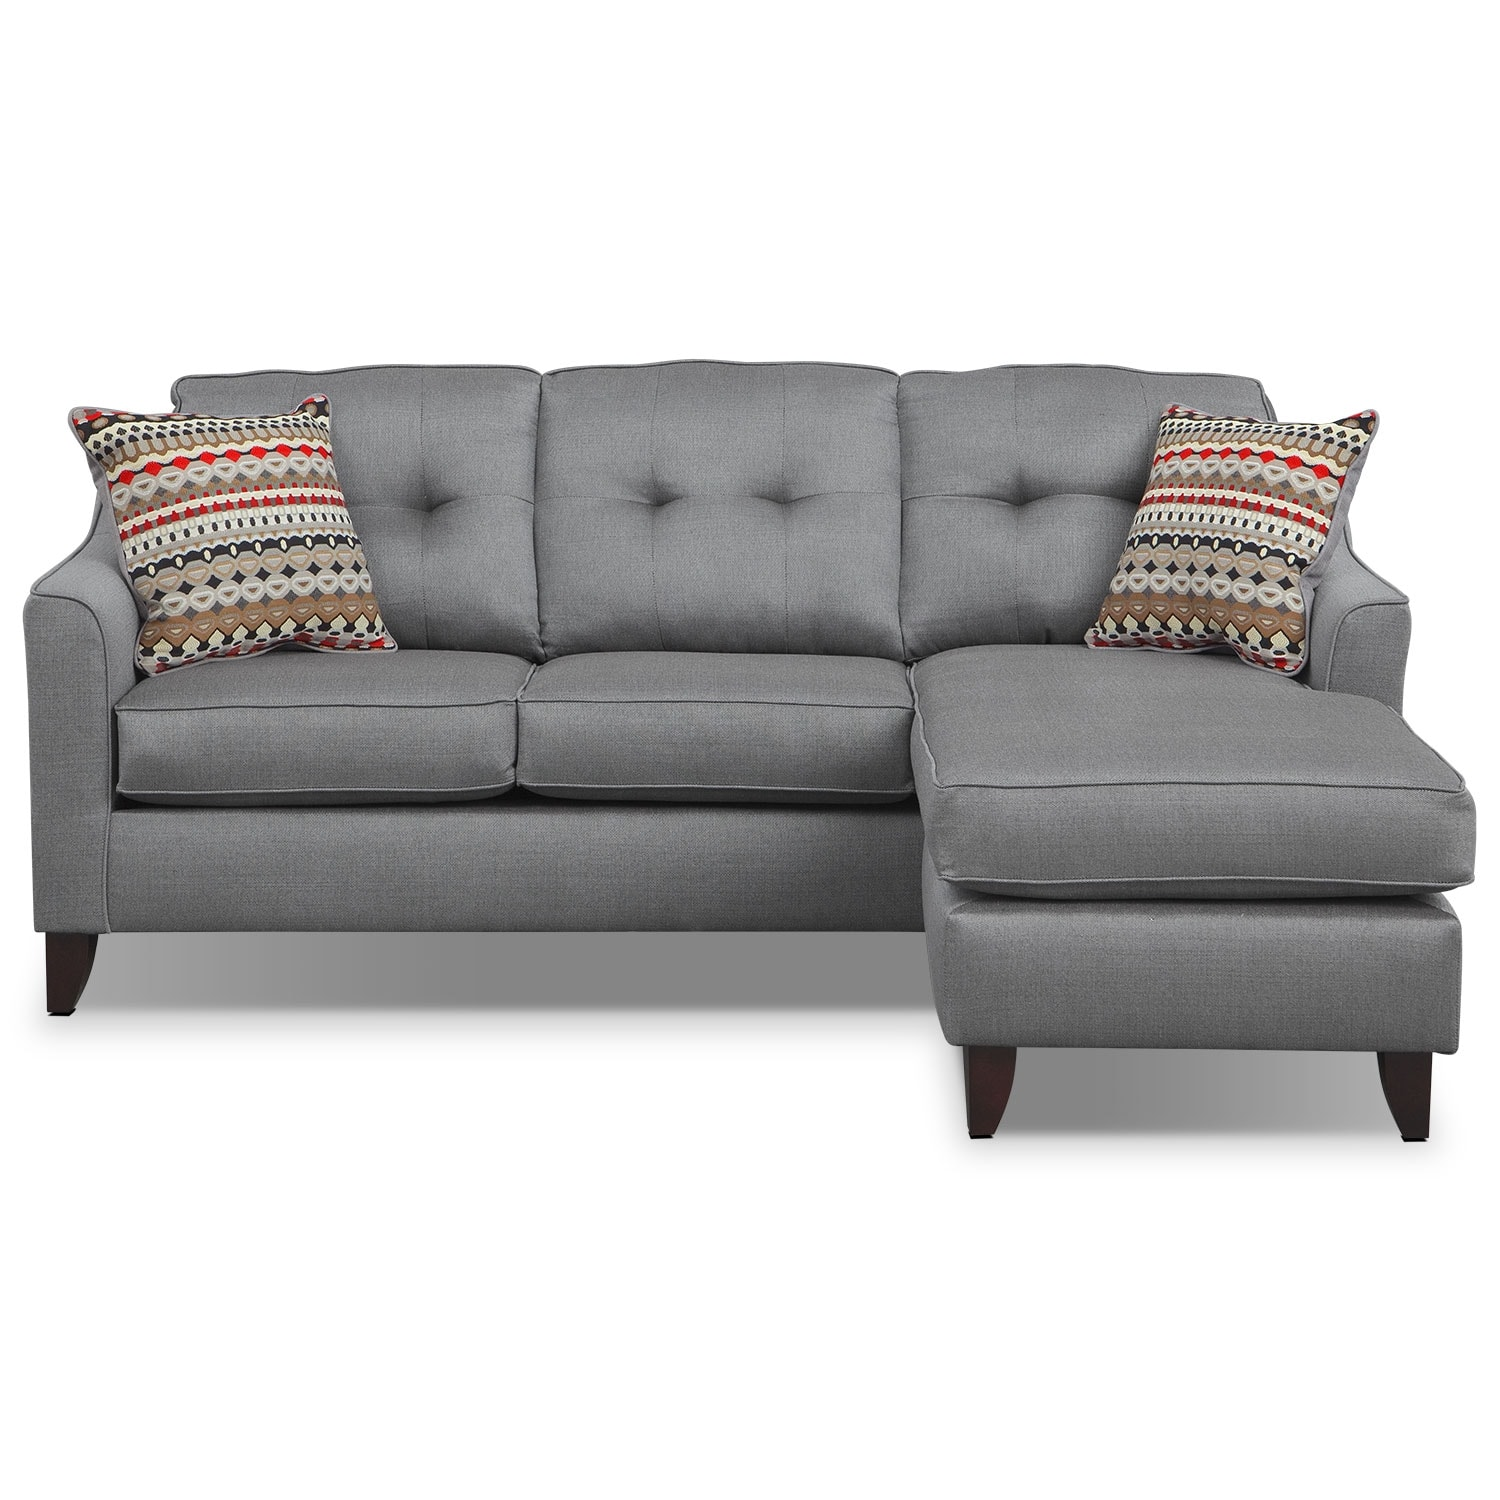 marco cream chaise sofa by factory outlet dwr como review sofas bryden slate american signature